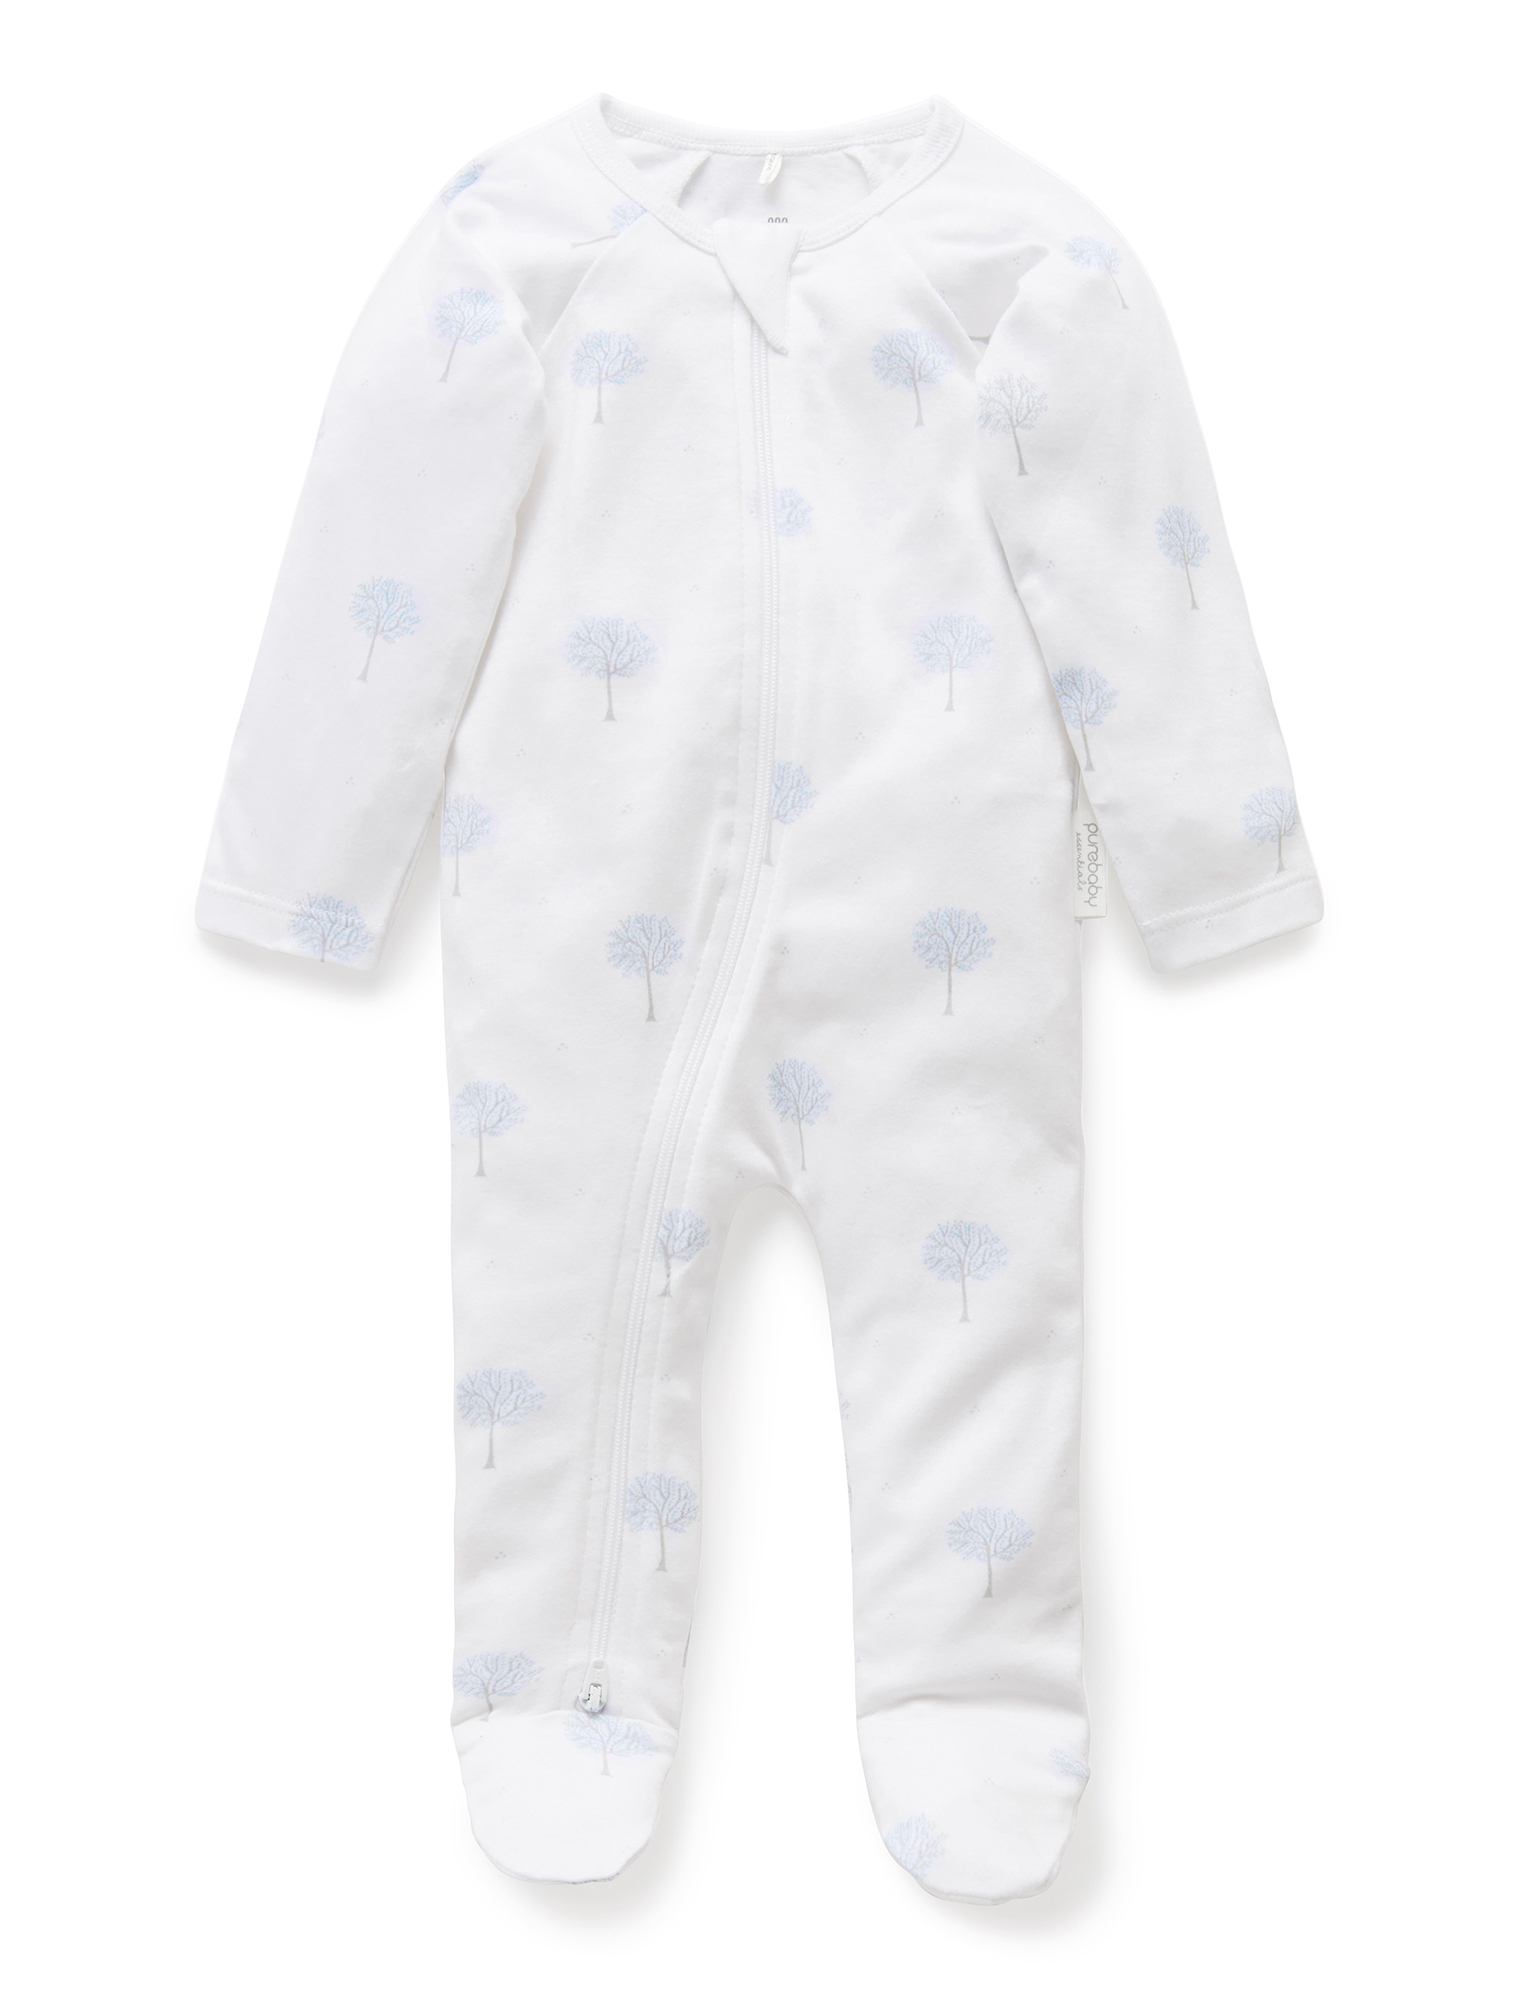 Purebaby Zip Babygro - Pale Blue Tree